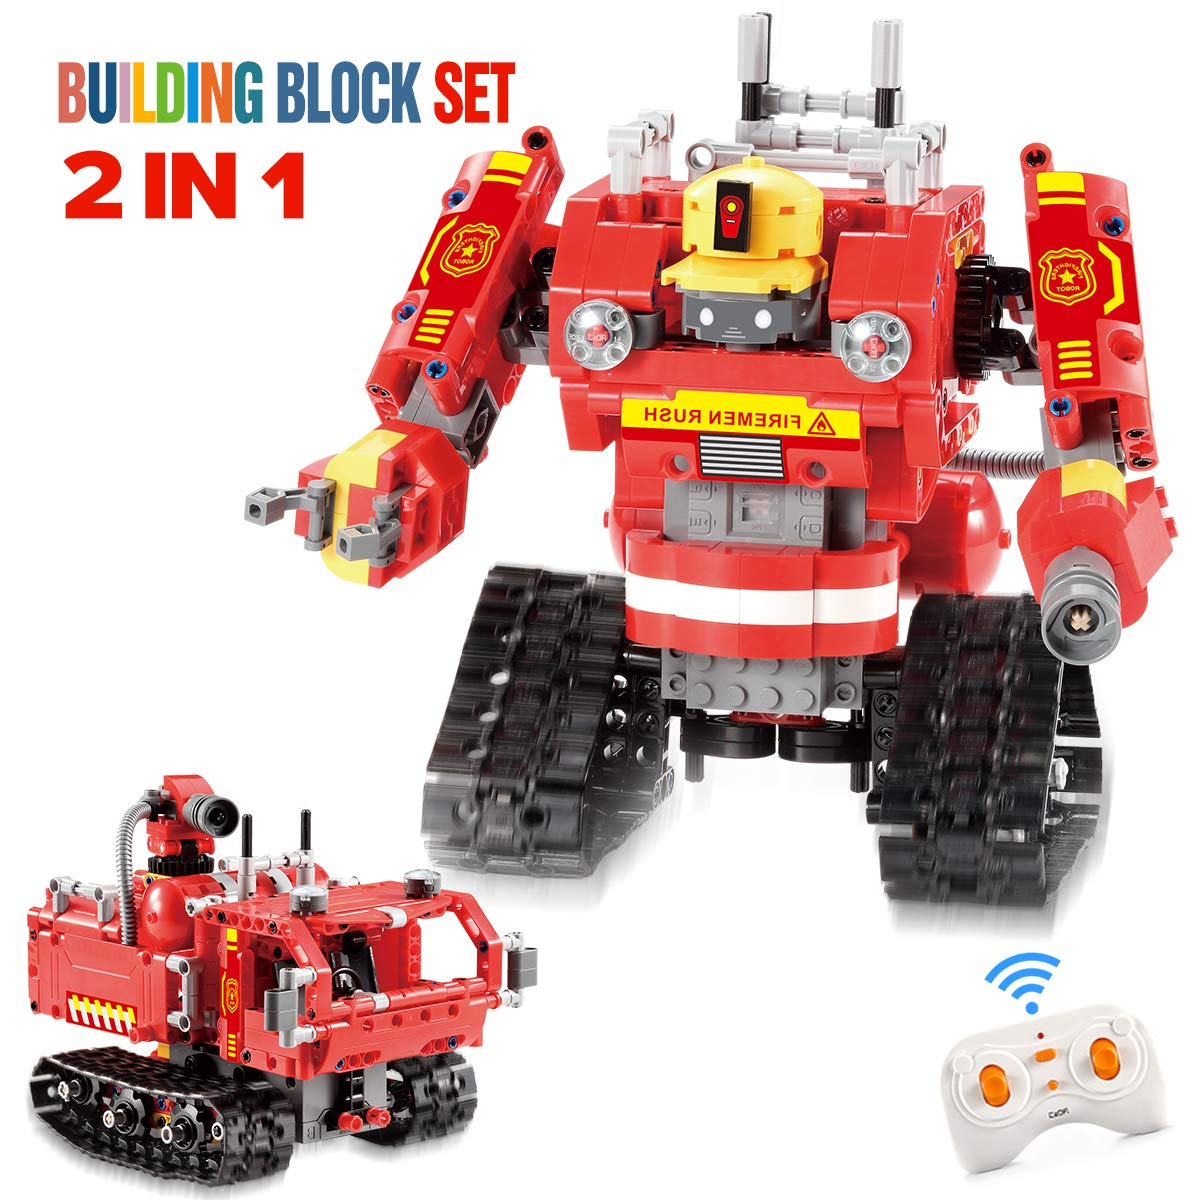 EL 2 in 1 Building Block Robot Remote Control Fireman Robot Car Toy Educational Kit Engineering STEM Building Toys Intelligent Gift for Boys and Girls (527 PCS)